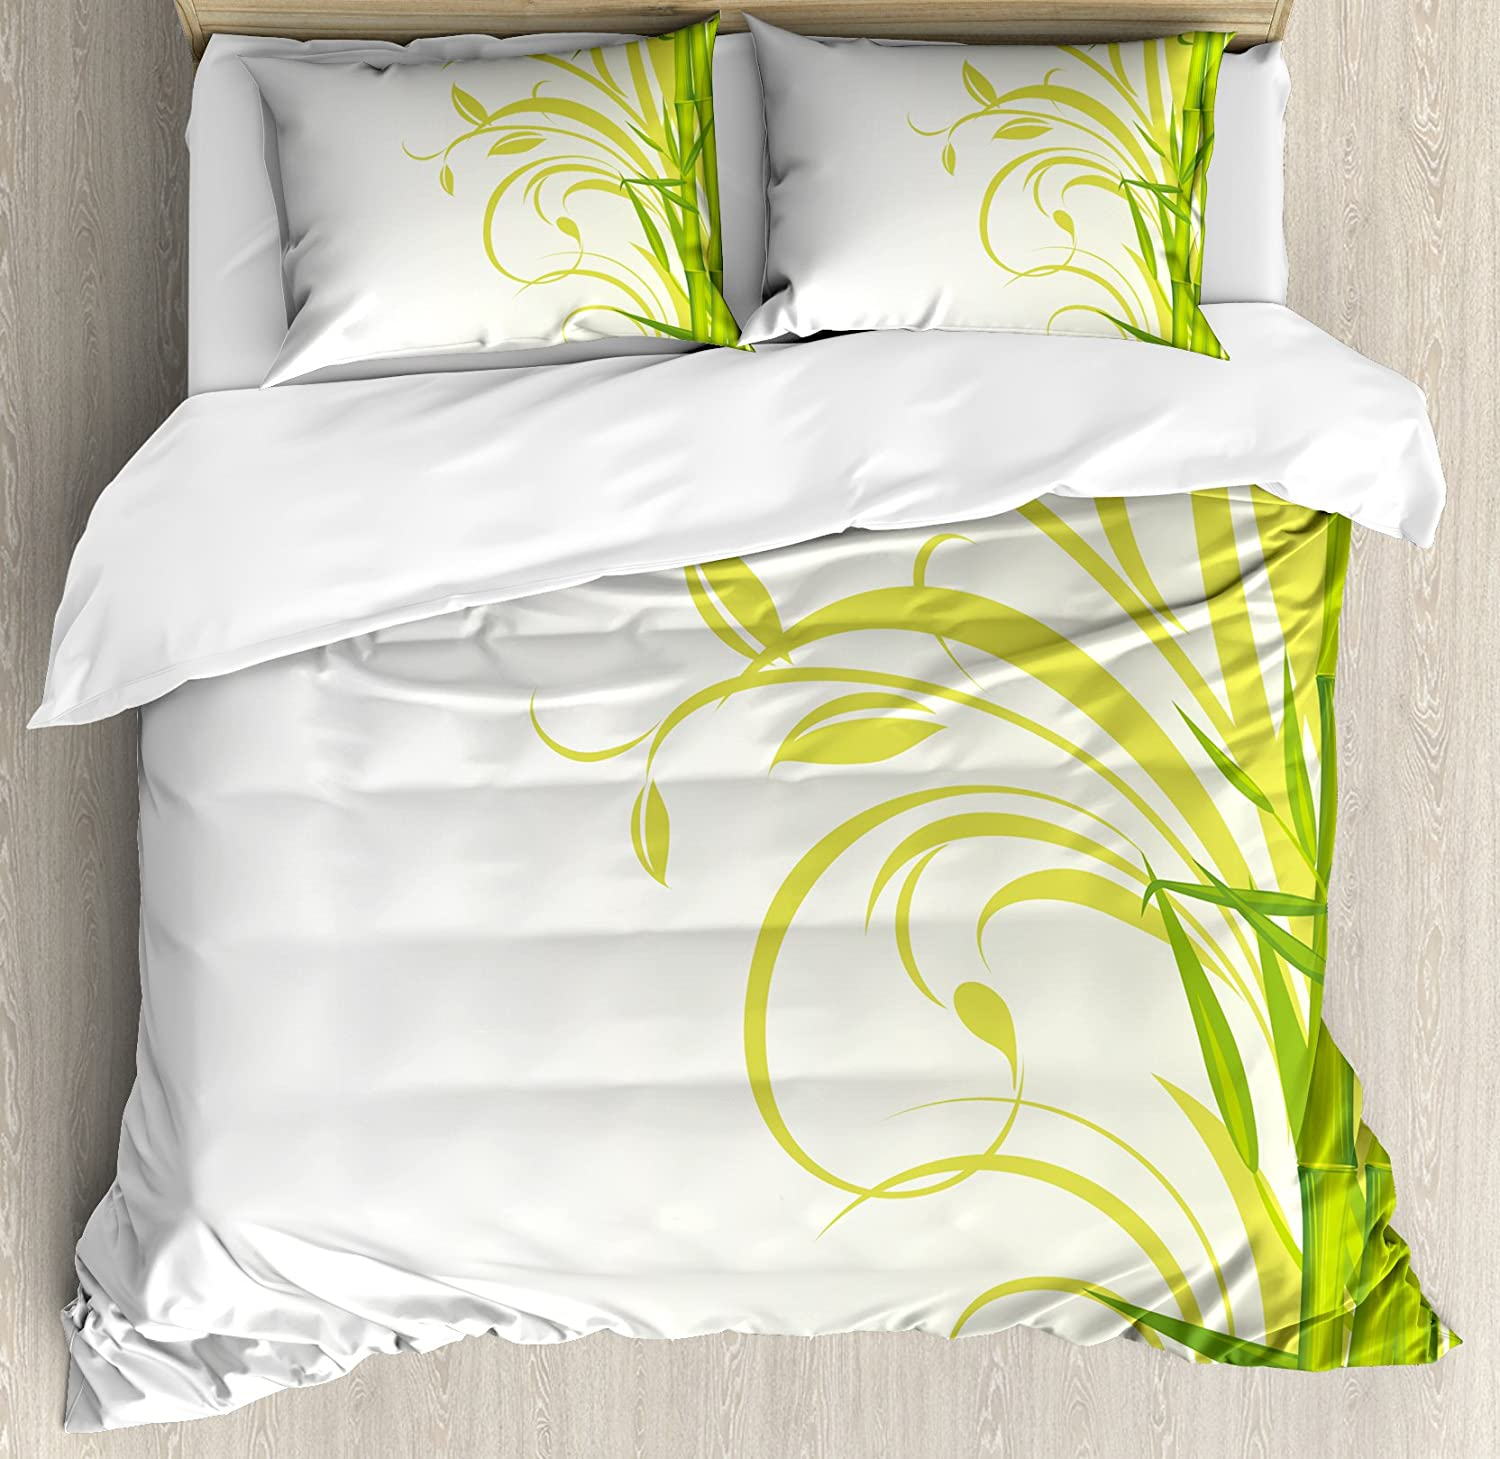 Ambesonne Green Duvet Cover Set, Bamboo with Floral Curly Leaves Feng Shui Garden, Decorative 3 Piece Bedding Set with 2 Pillow Shams, King Size, Lime Green